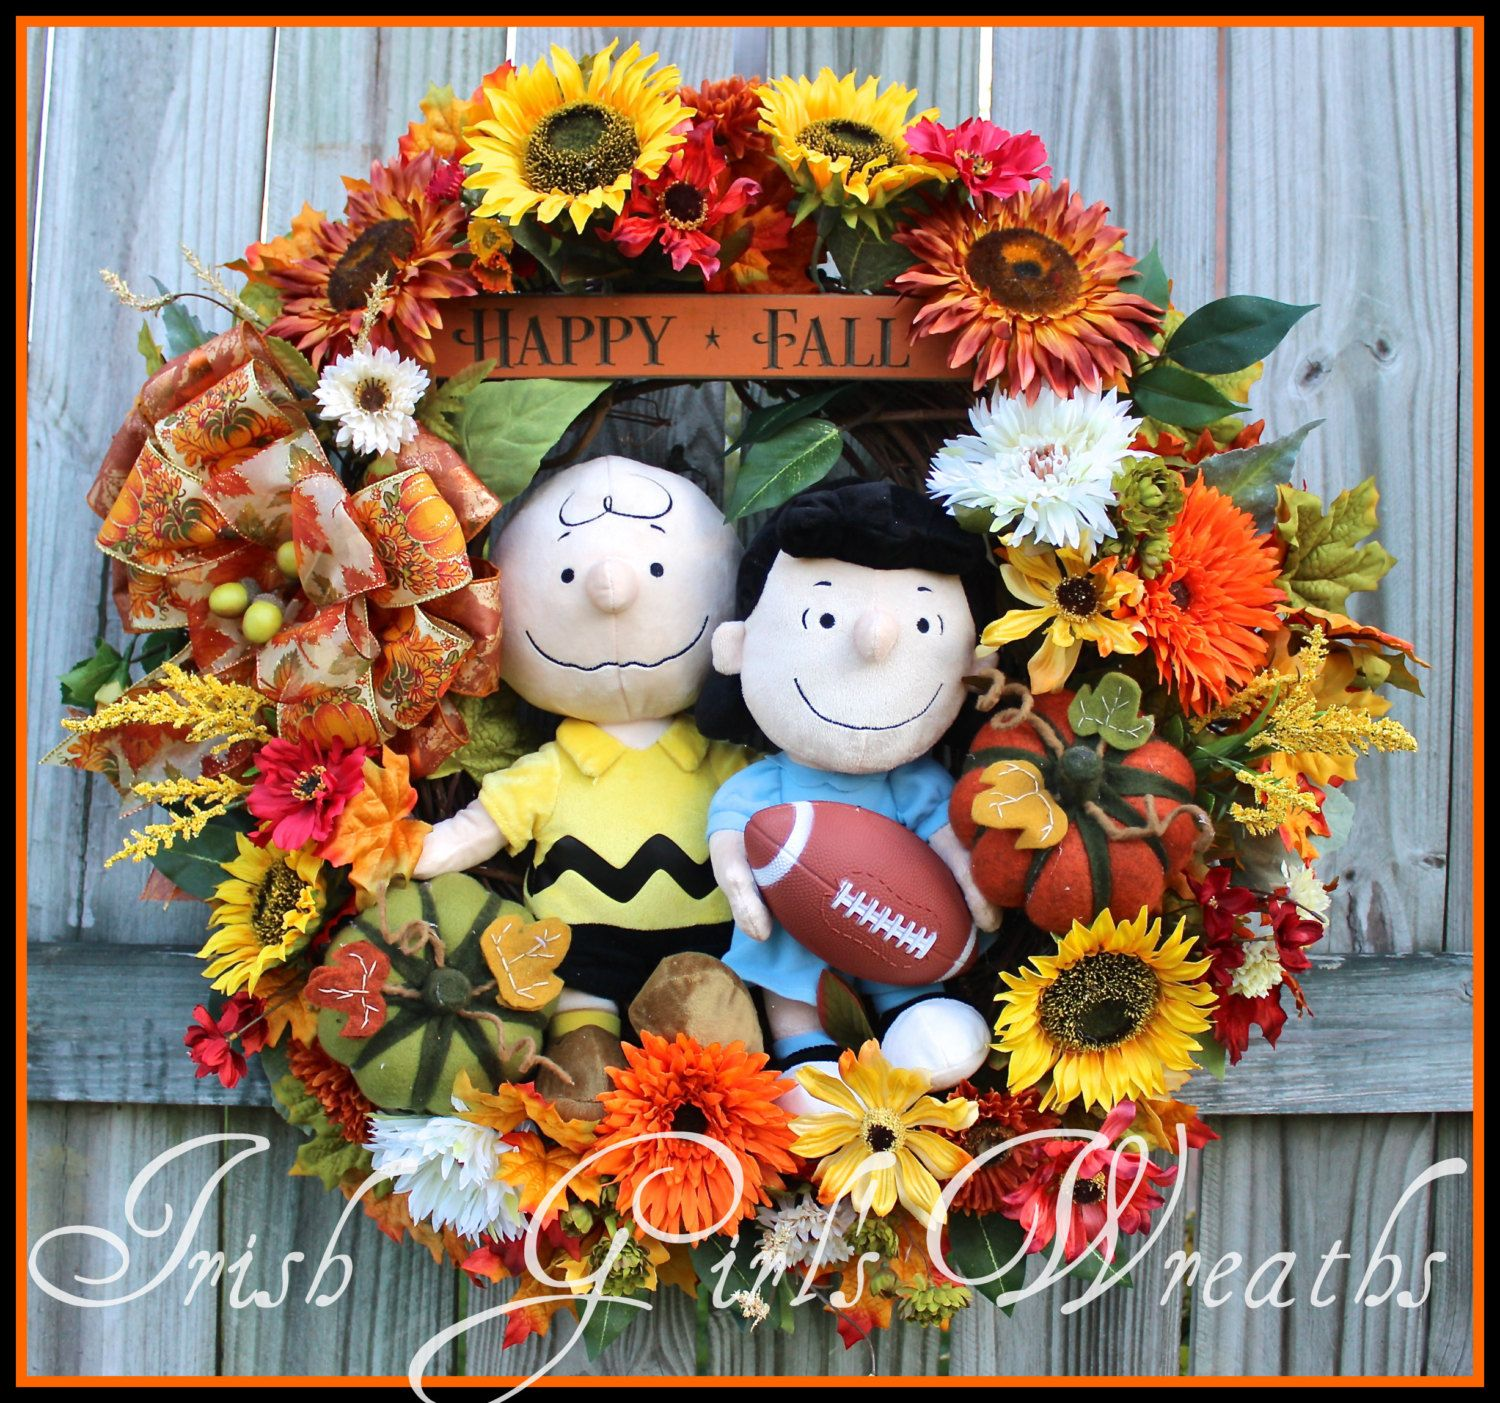 Charlie Brown & Lucy with Football Happy Fall Wreath, Peanuts Wreath, large, Sunflower, felt covered Pumpkin by IrishGirlsWreaths on Etsy